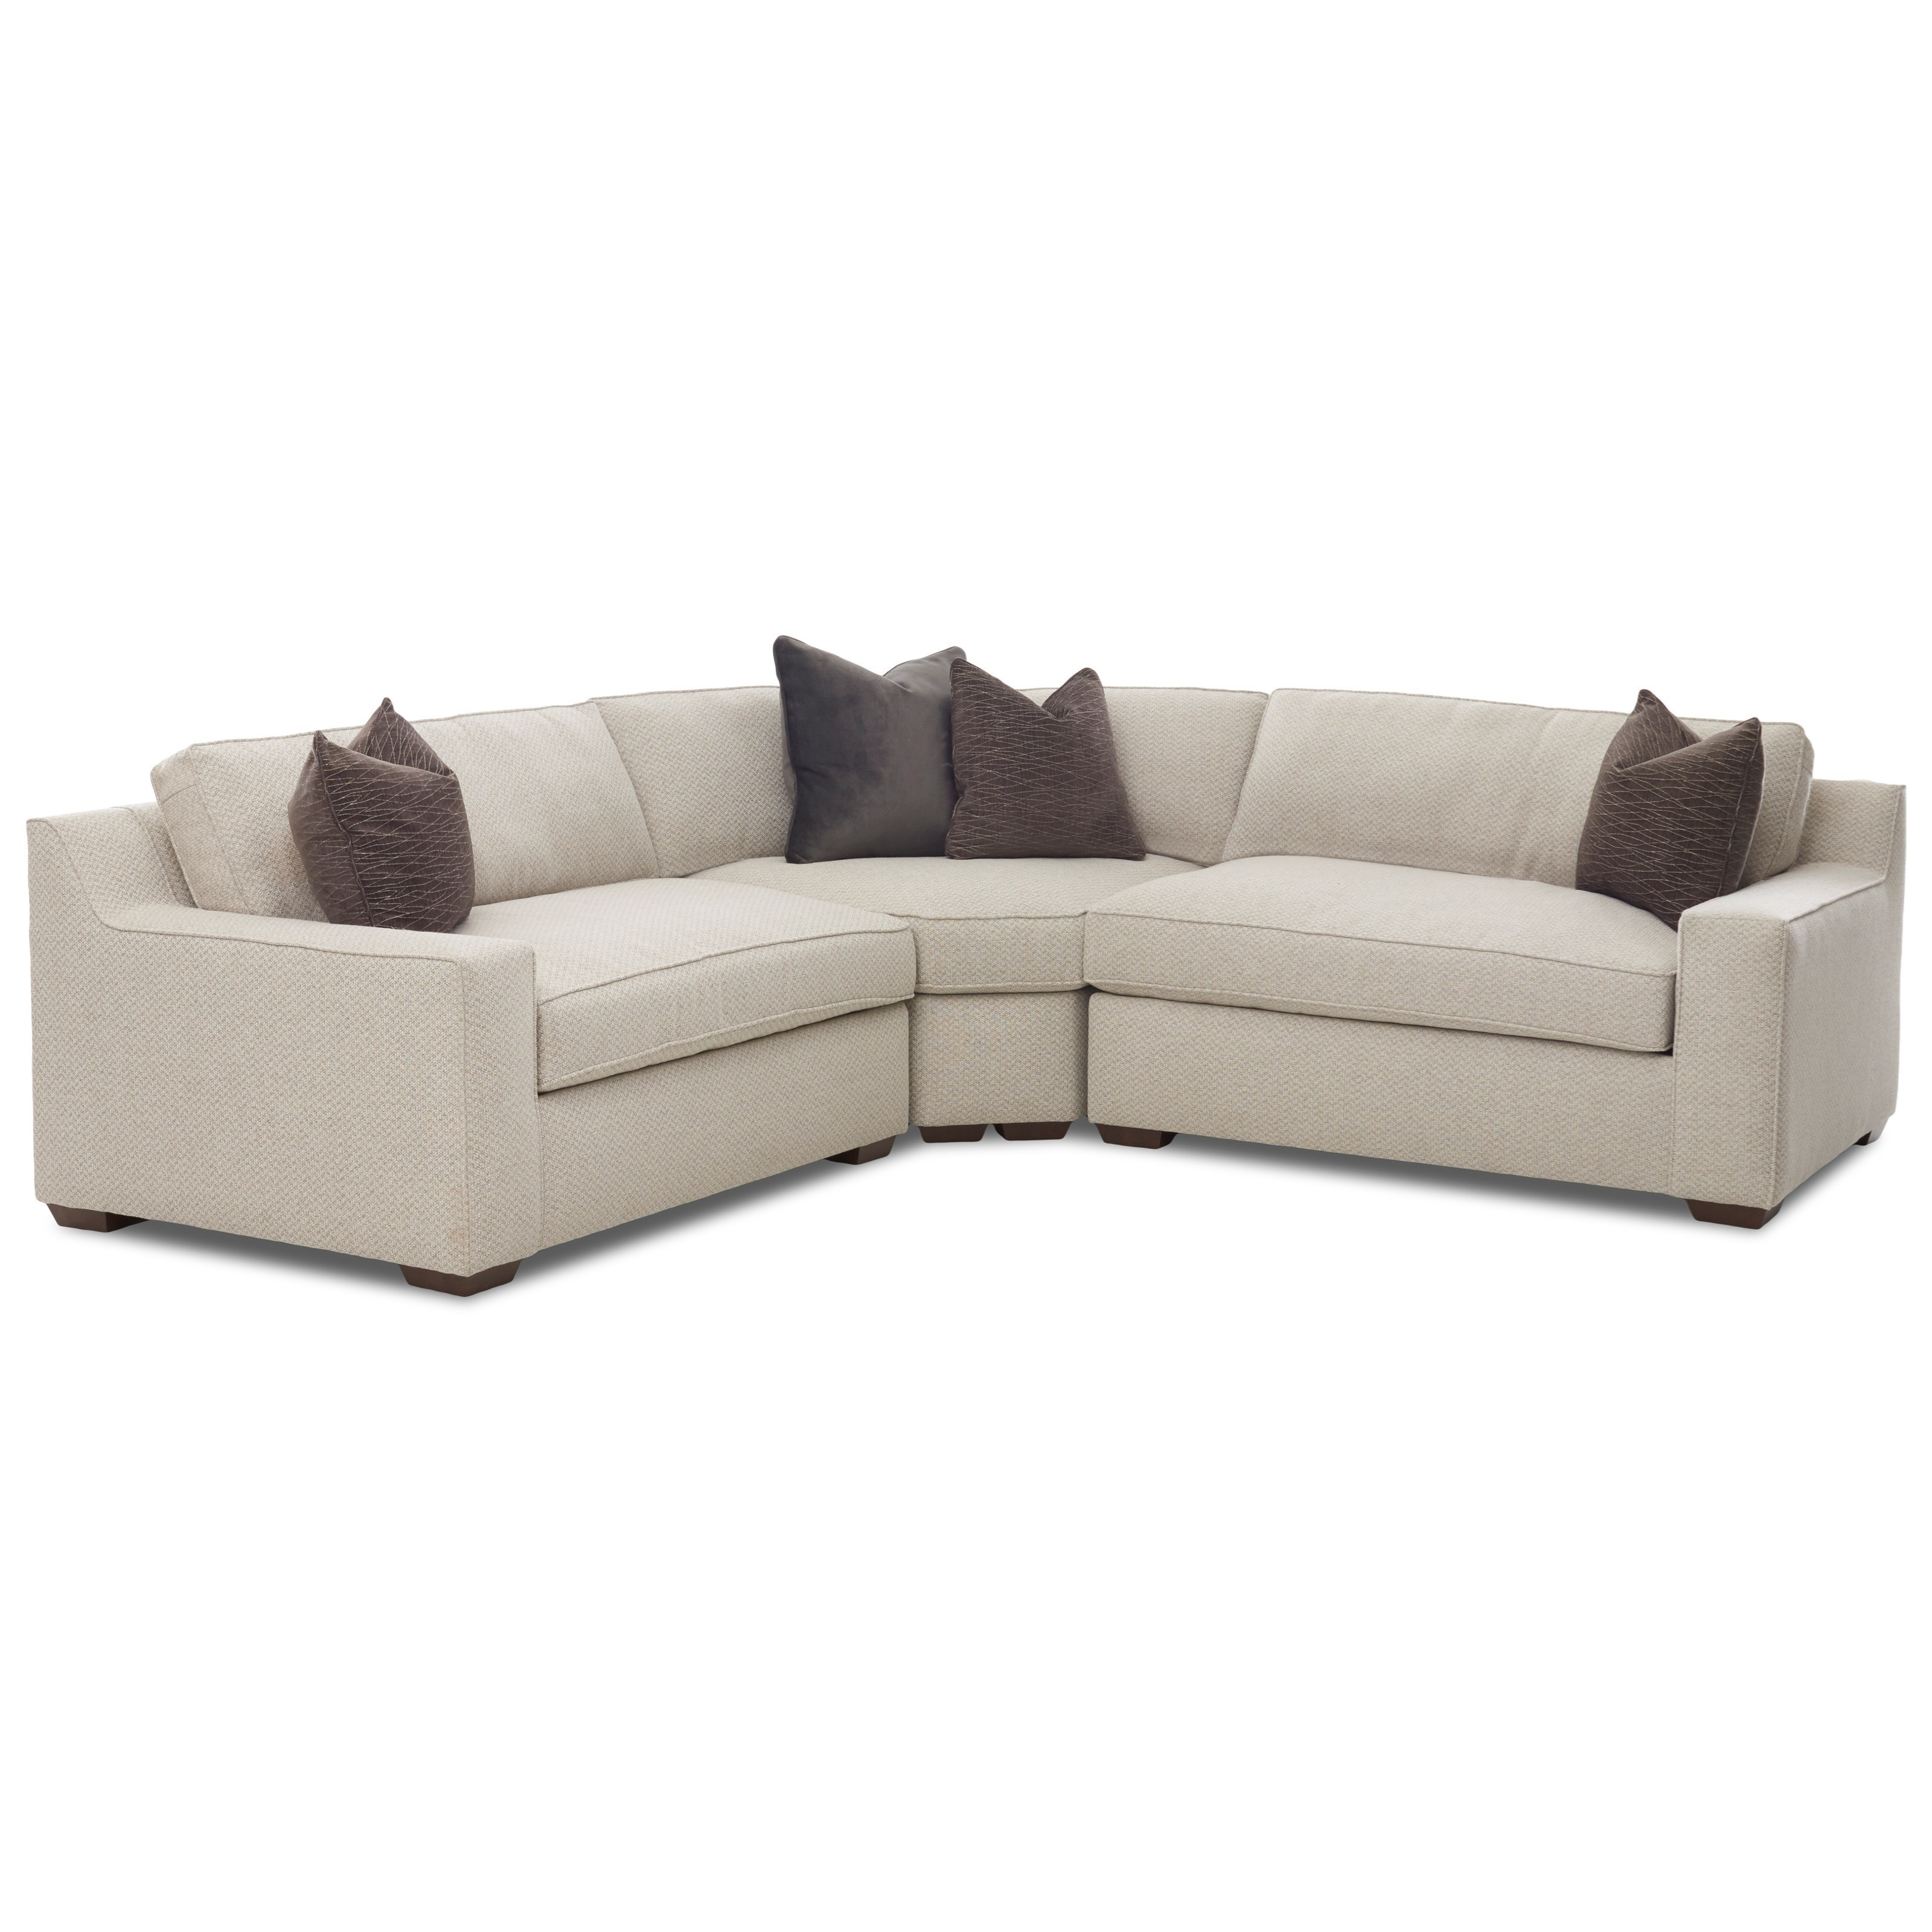 Klaussner Becks Contemporary Three Piece Corner Sectional Sofa